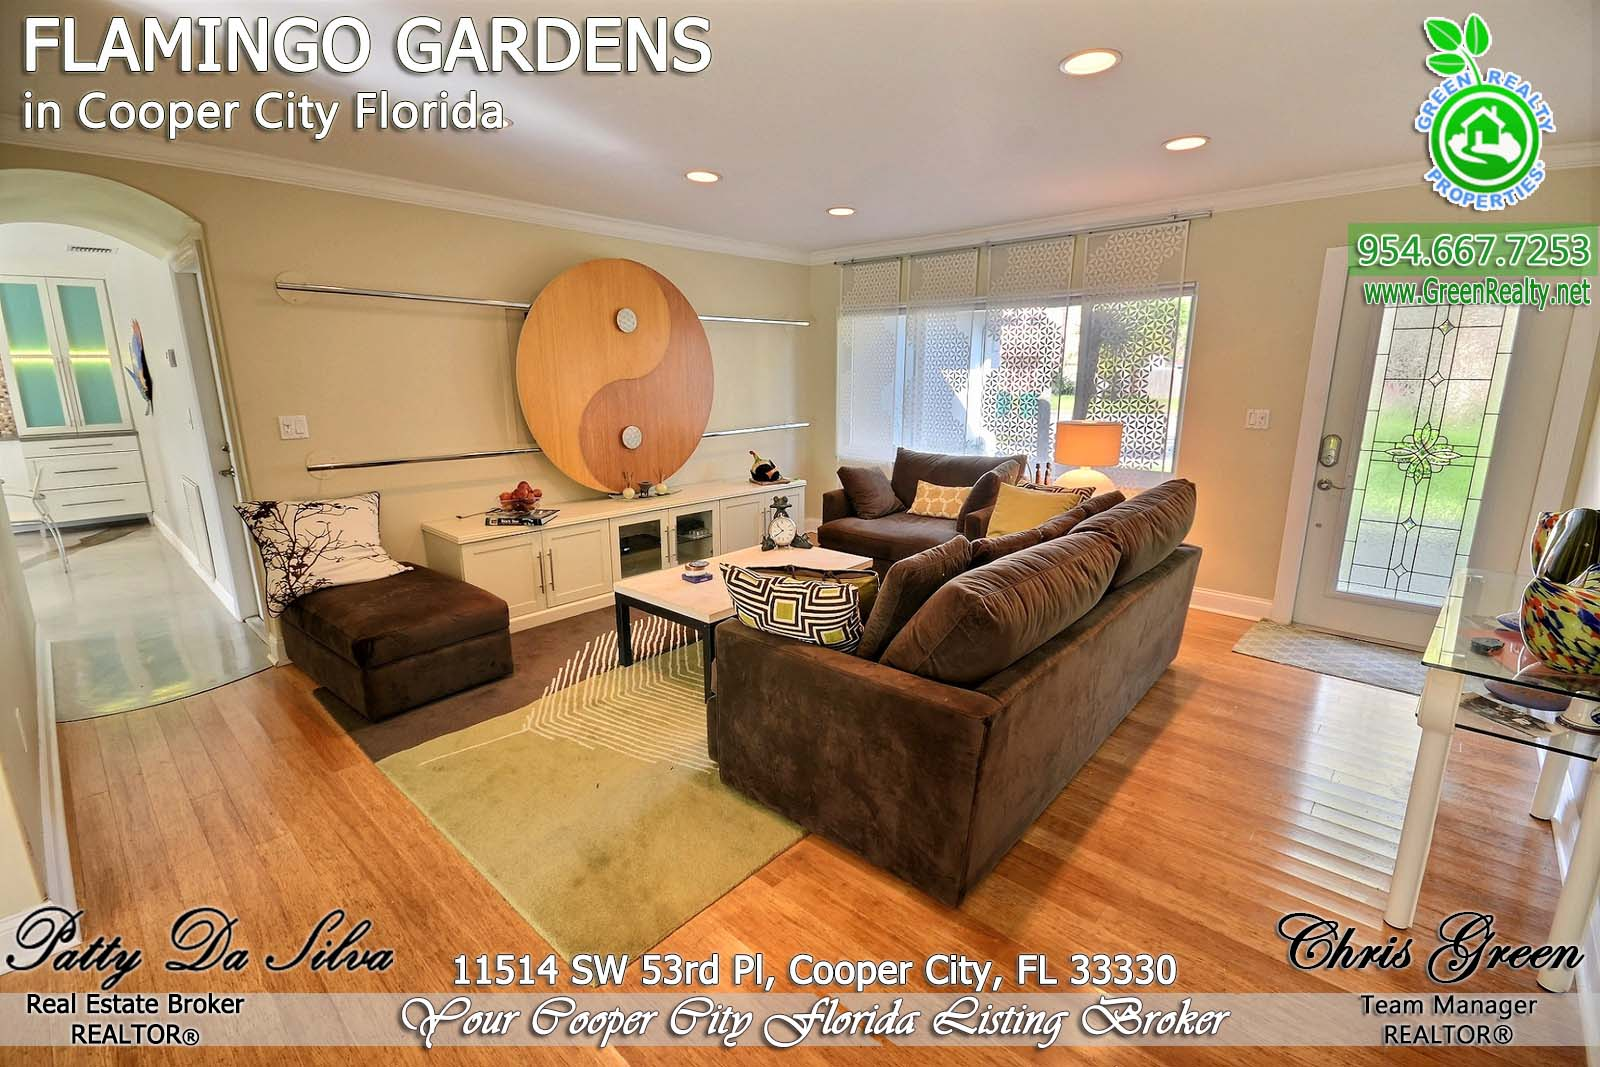 13 Flamingo Gardens Cooper City Homes For Sale (11)_1